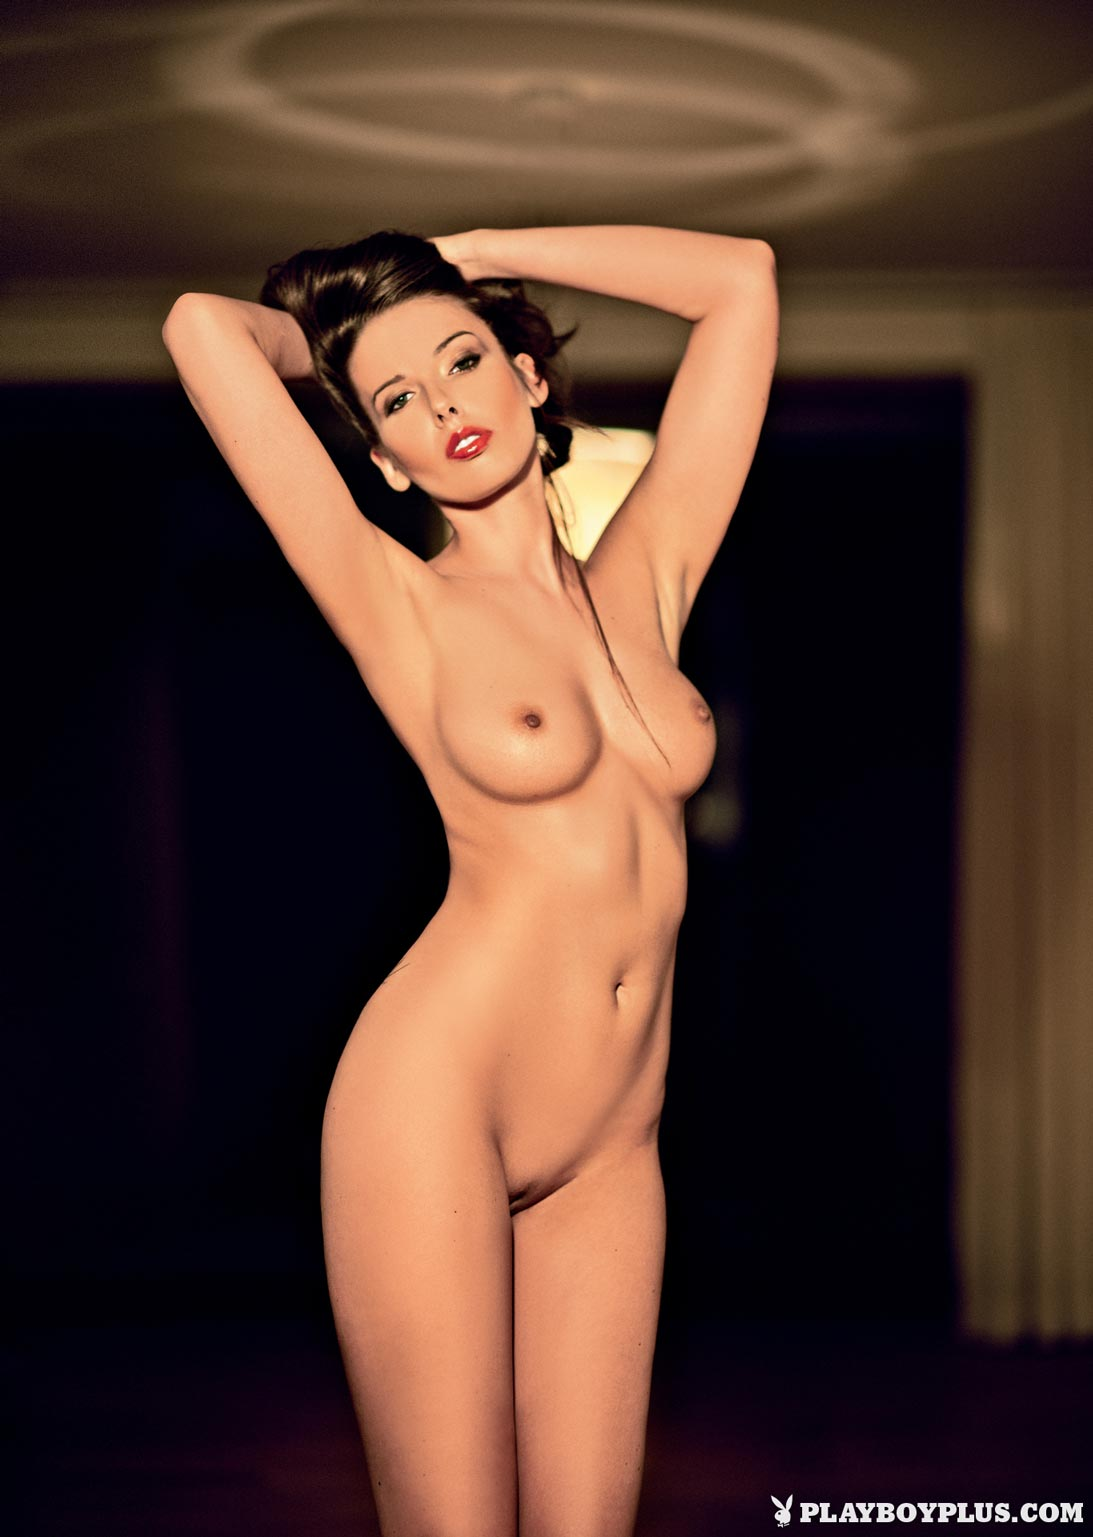 Hot pictures Busty naked women pics